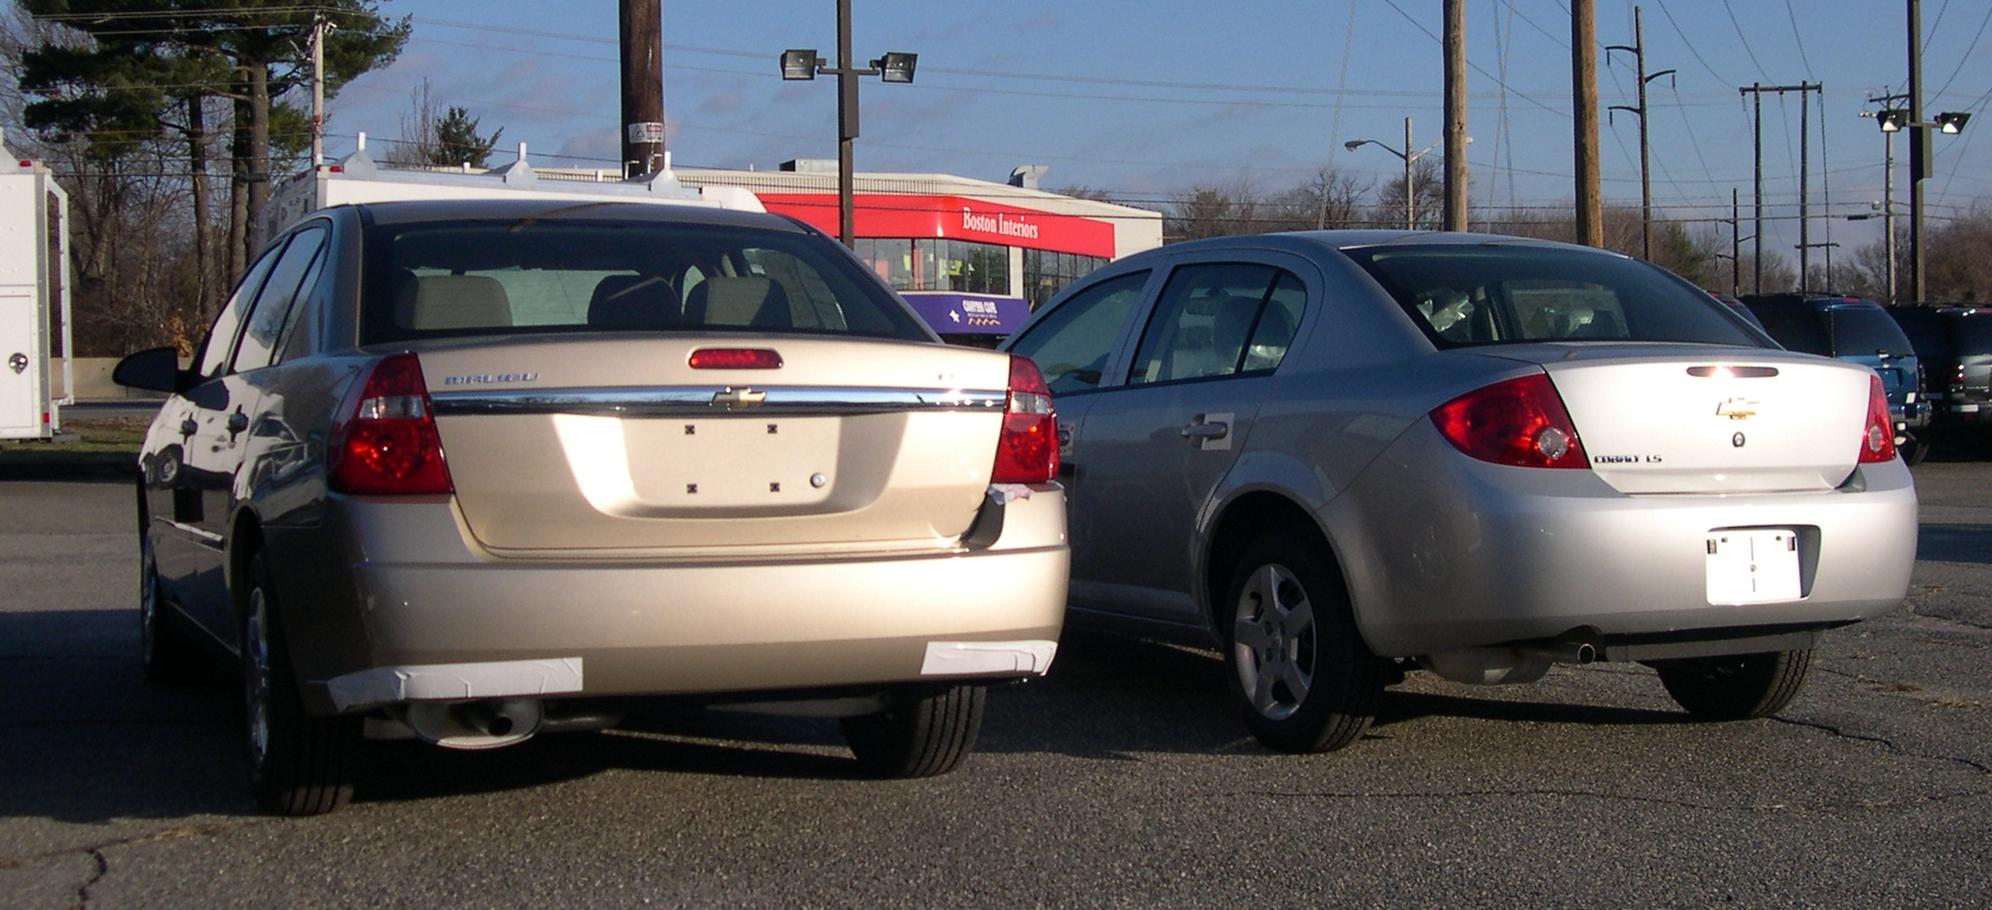 All Types cobalt 2006 : File:2006 Chevrolet Cobalt and Malibu rear.jpg - Wikimedia Commons